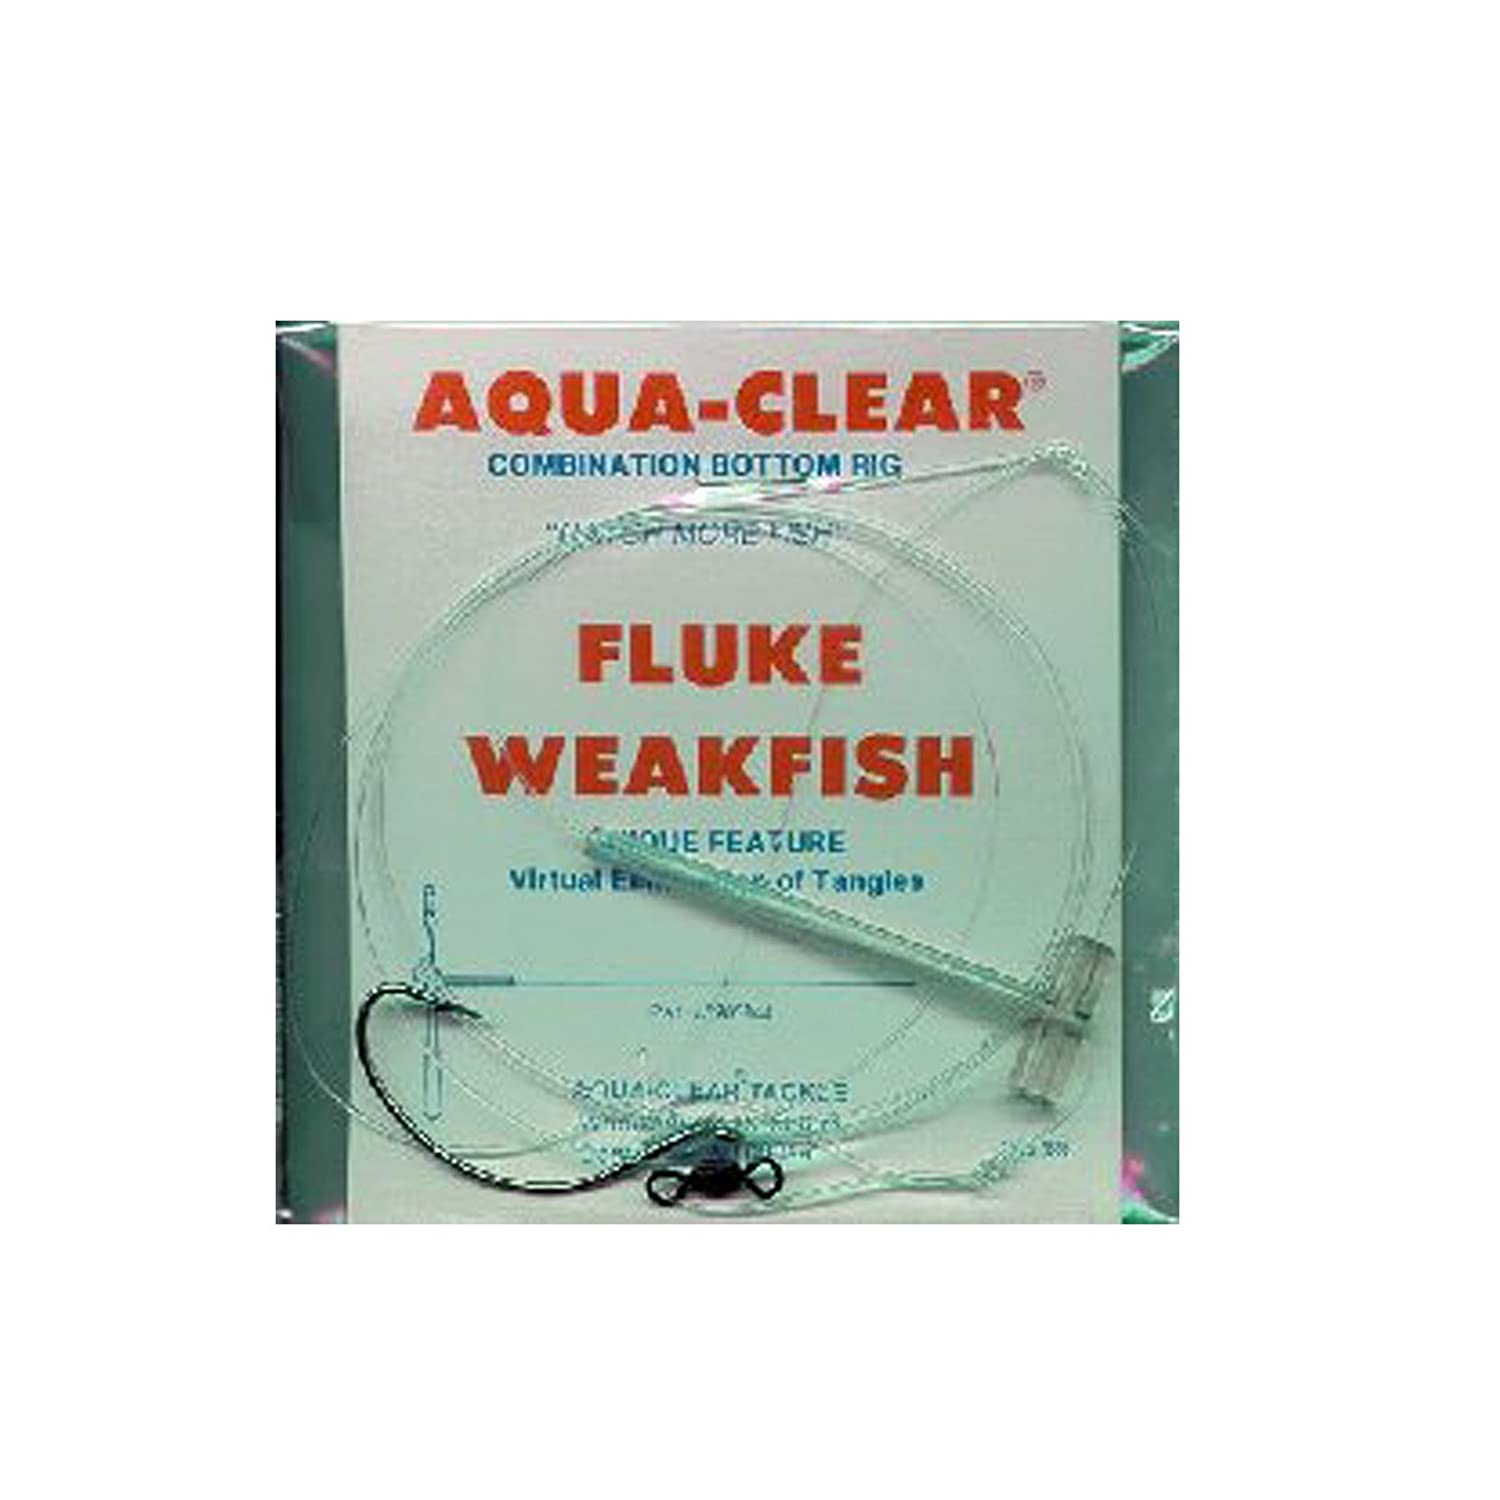 AquaClear Fluke/Weakfish Rigs Single Leader Plain or Pearl/Spinner Stainless Steel Wide Gap Hook